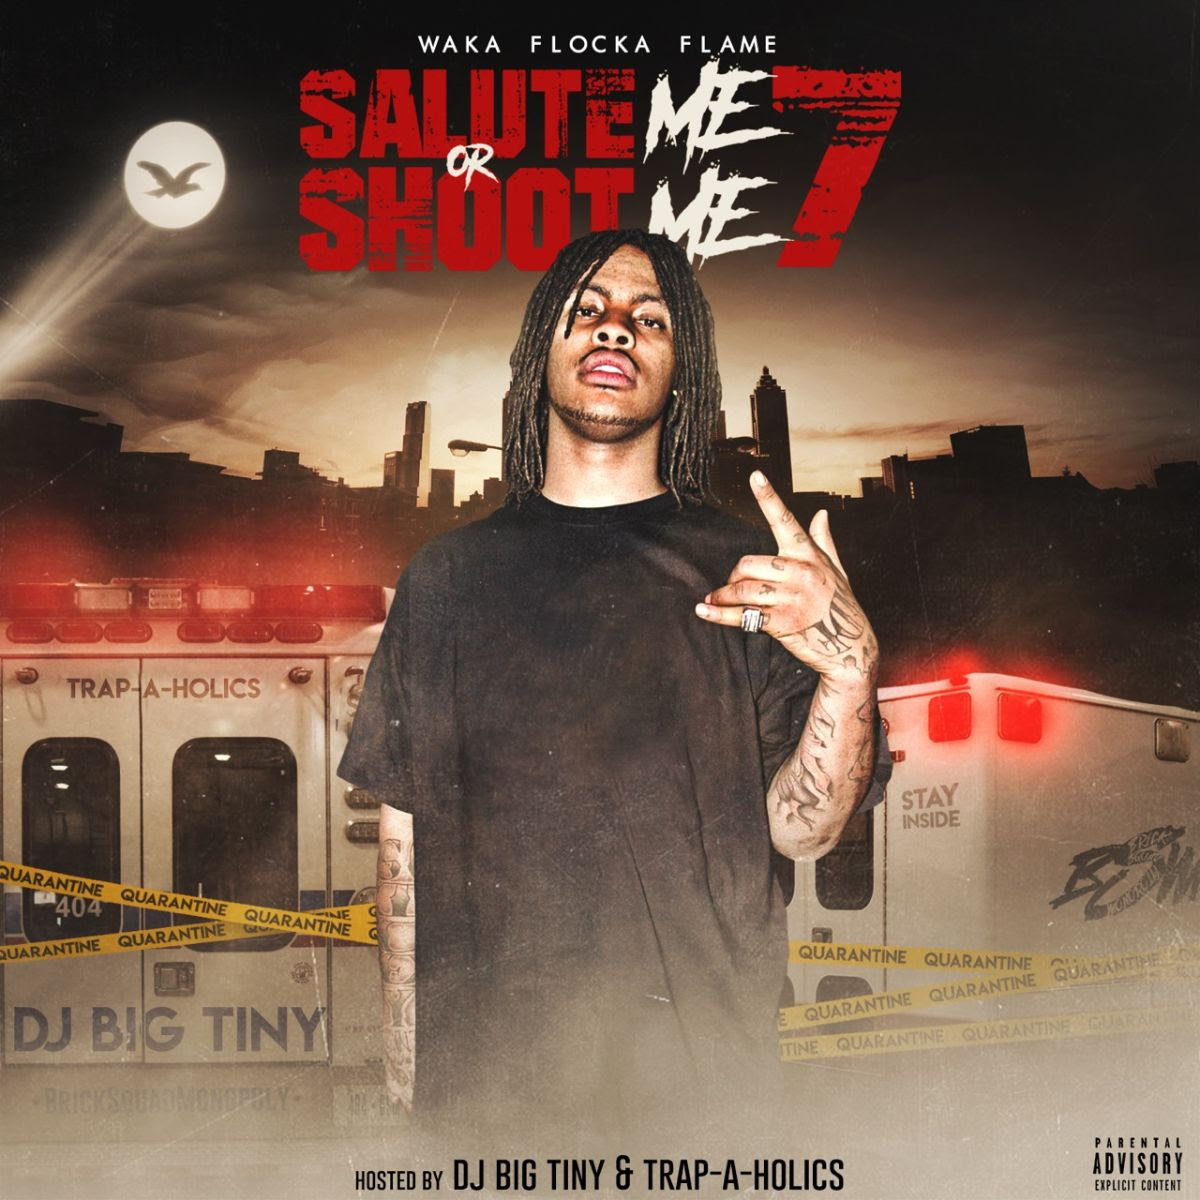 Waka Flocka Flame shares mixtape 'Salute Me or Shoot Me 7': Listen is.gd/EcThI6 @WakaFlocka